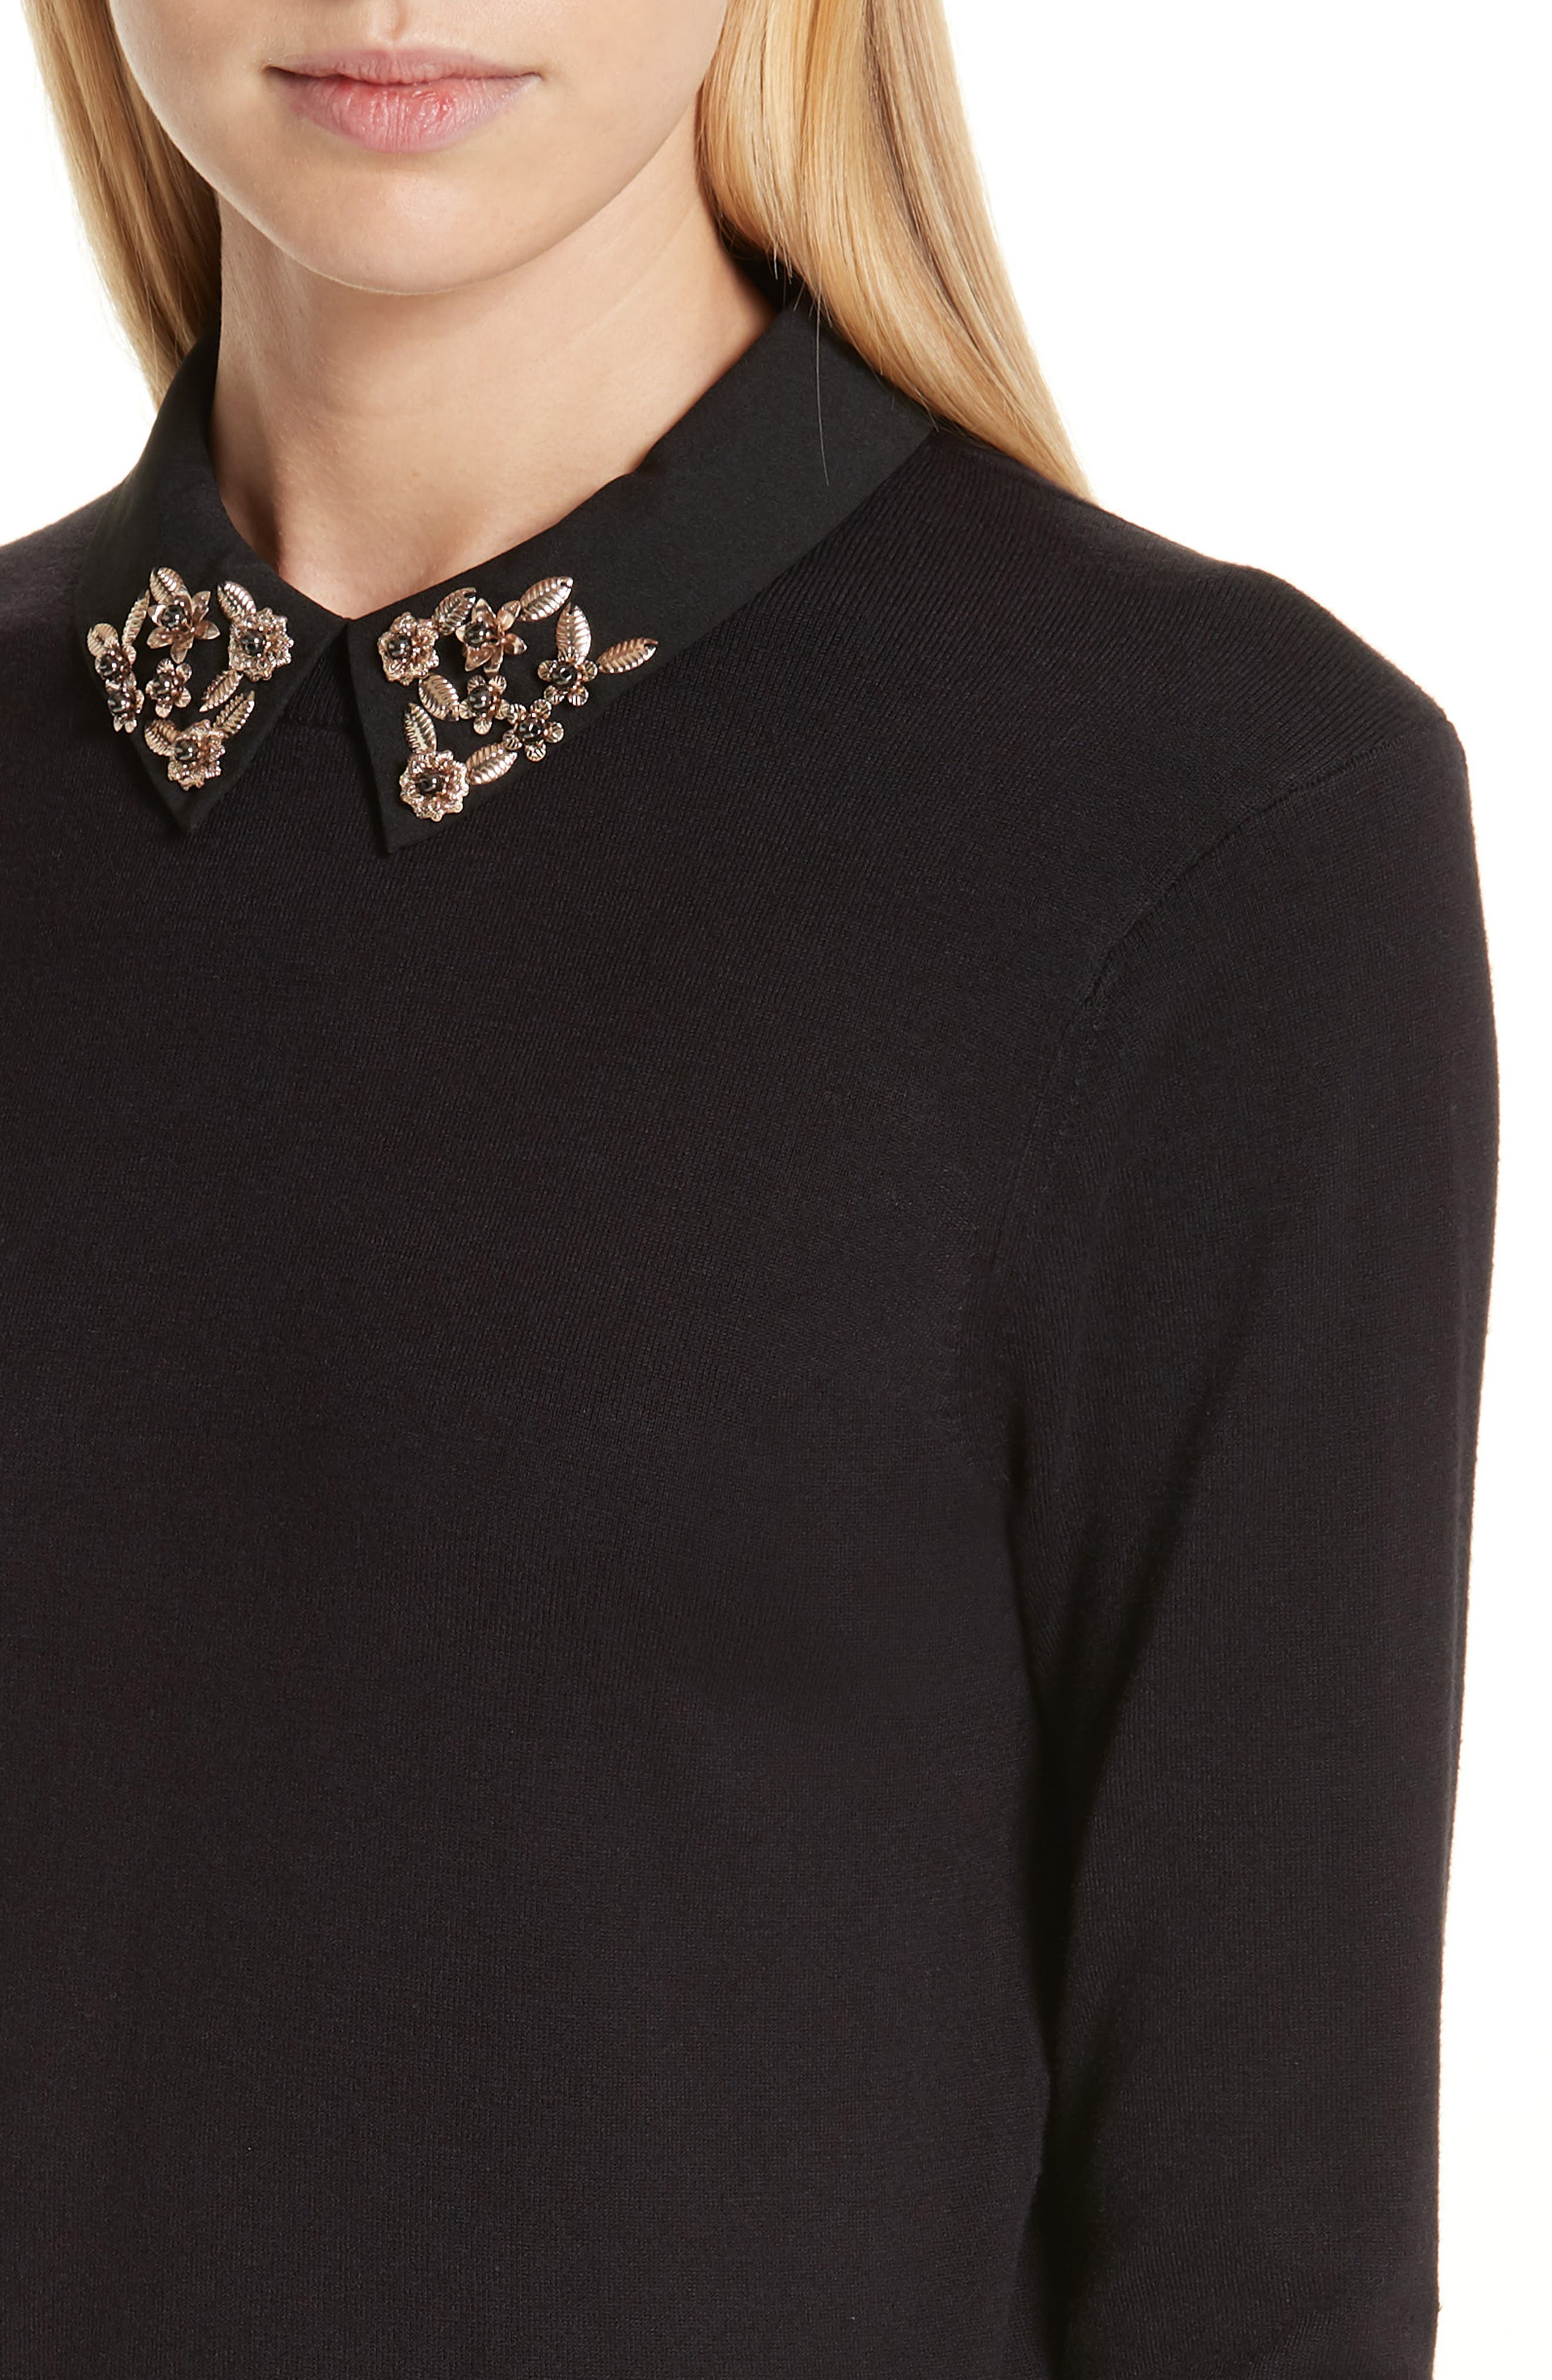 Moliiee Embroidered Collar Sweater,                             Alternate thumbnail 4, color,                             BLACK